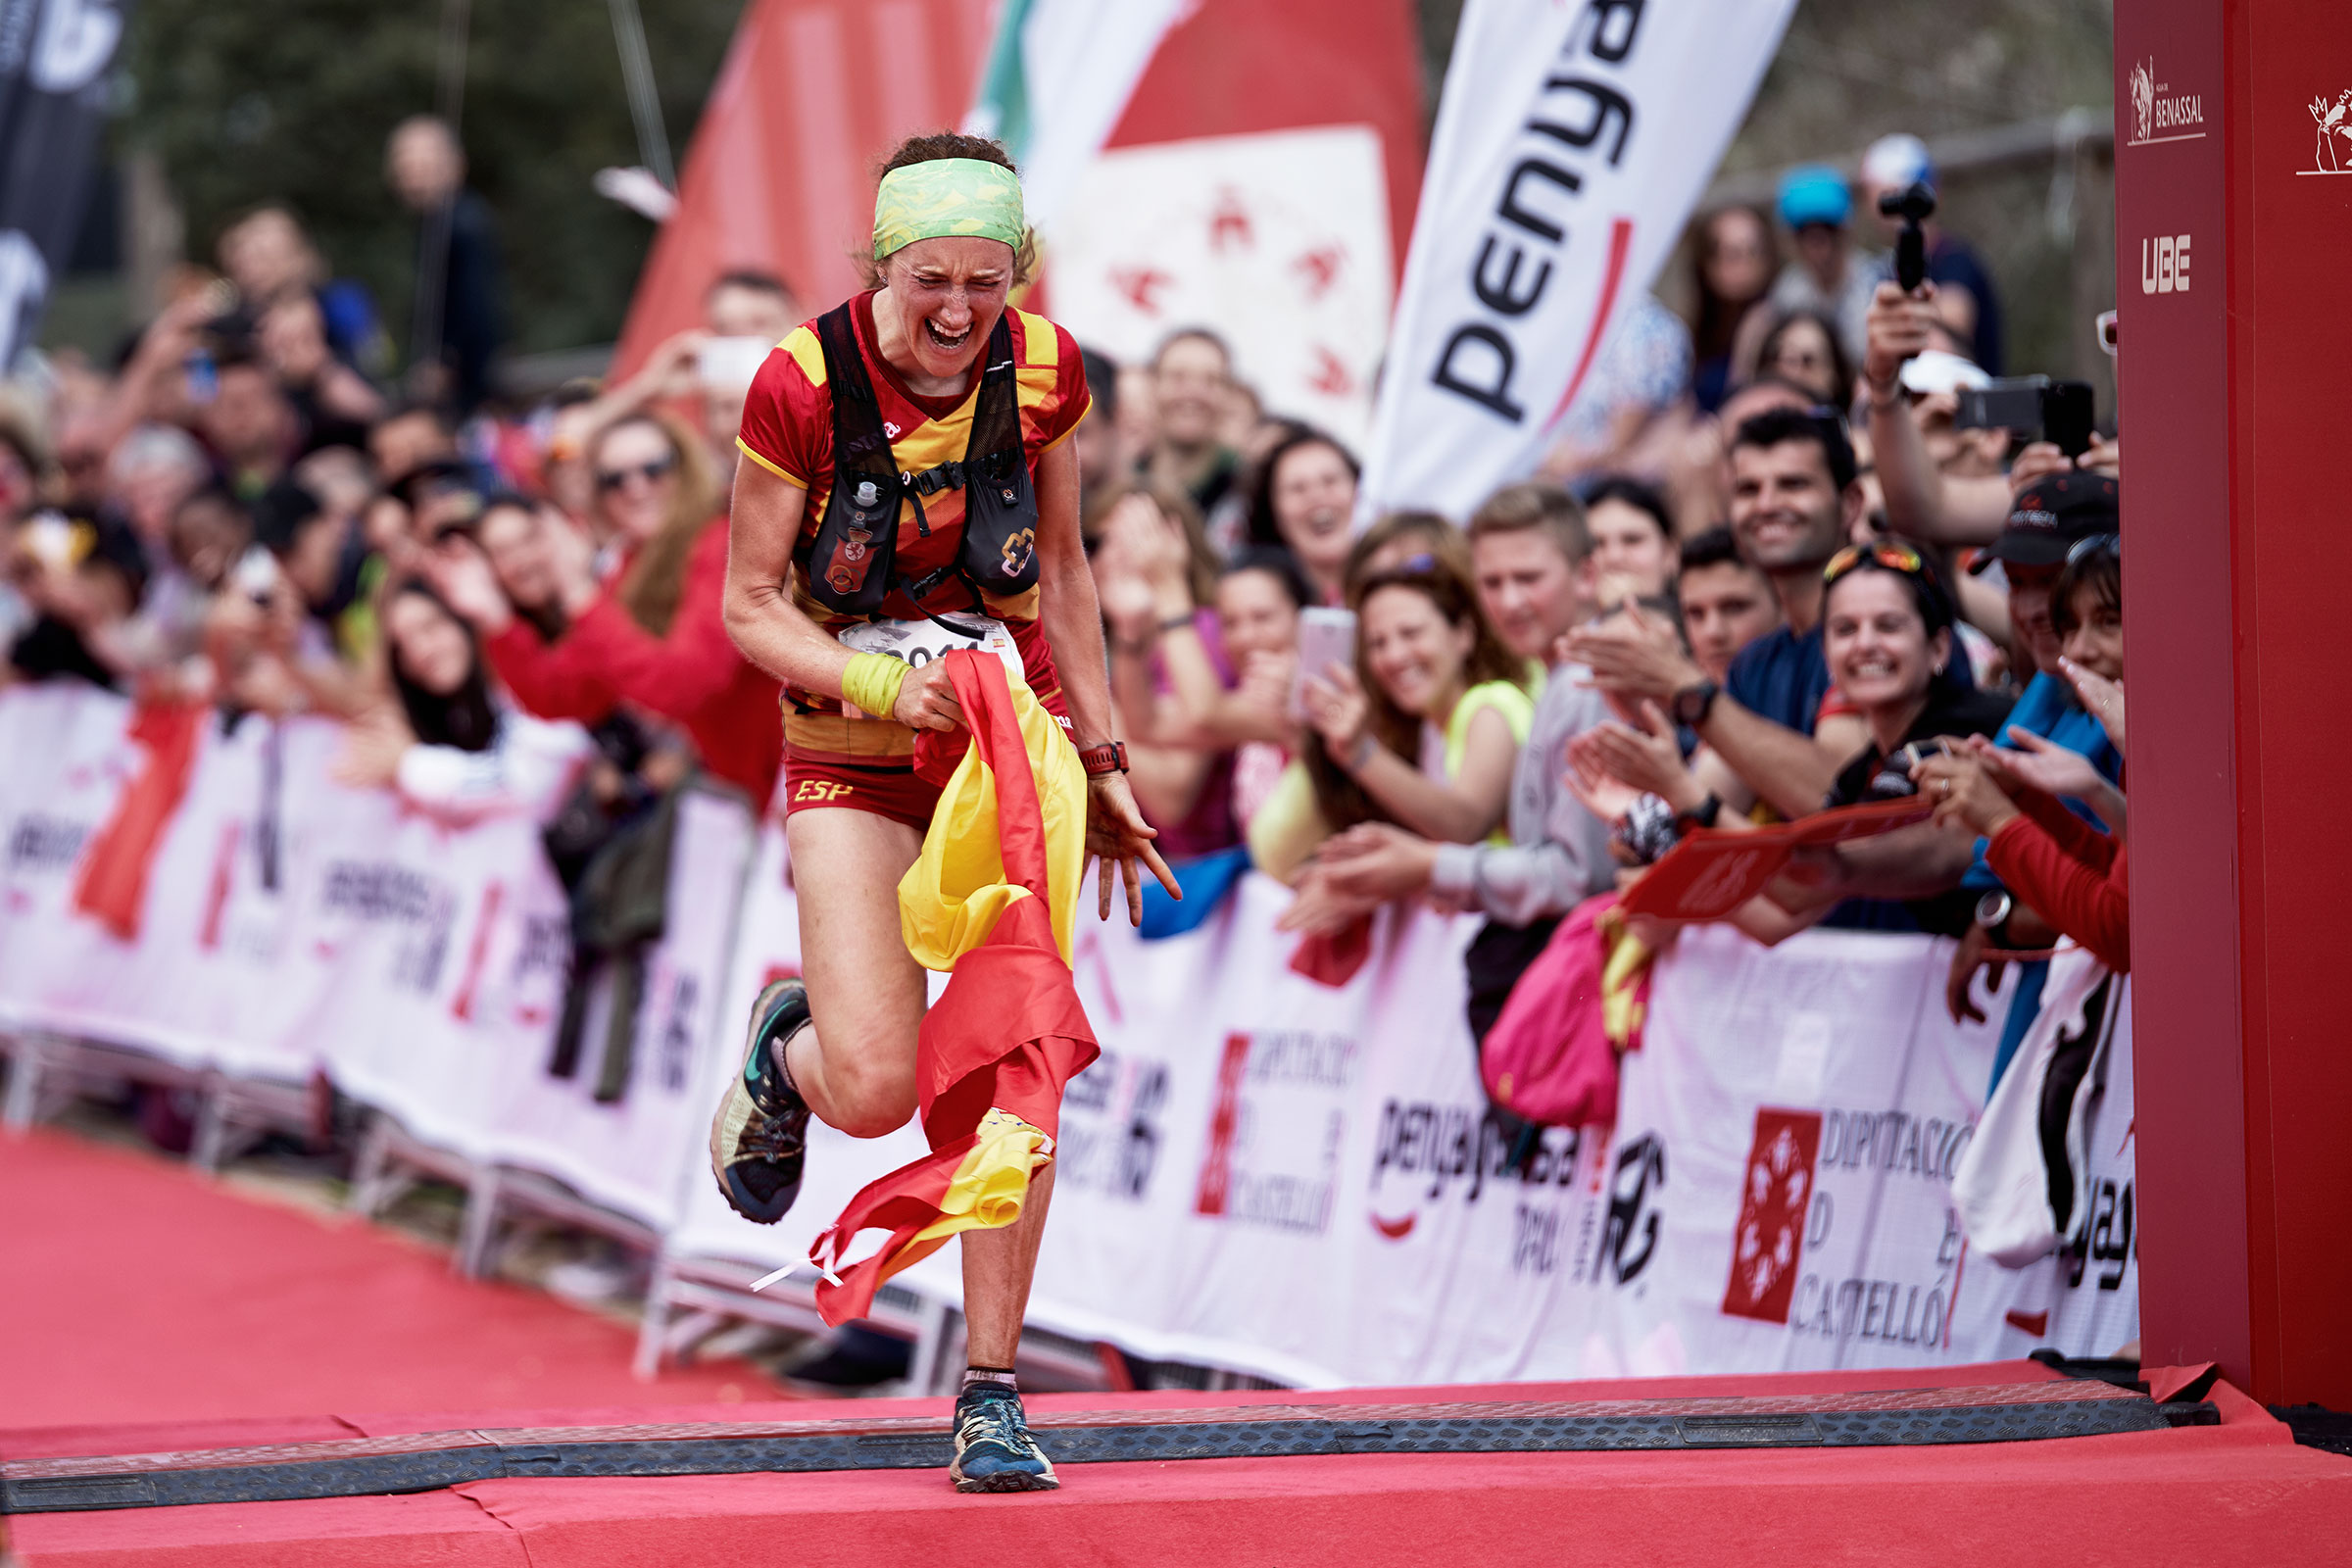 Laia Cañes / Penyagolosa Trail World Championship 2018 / Spain